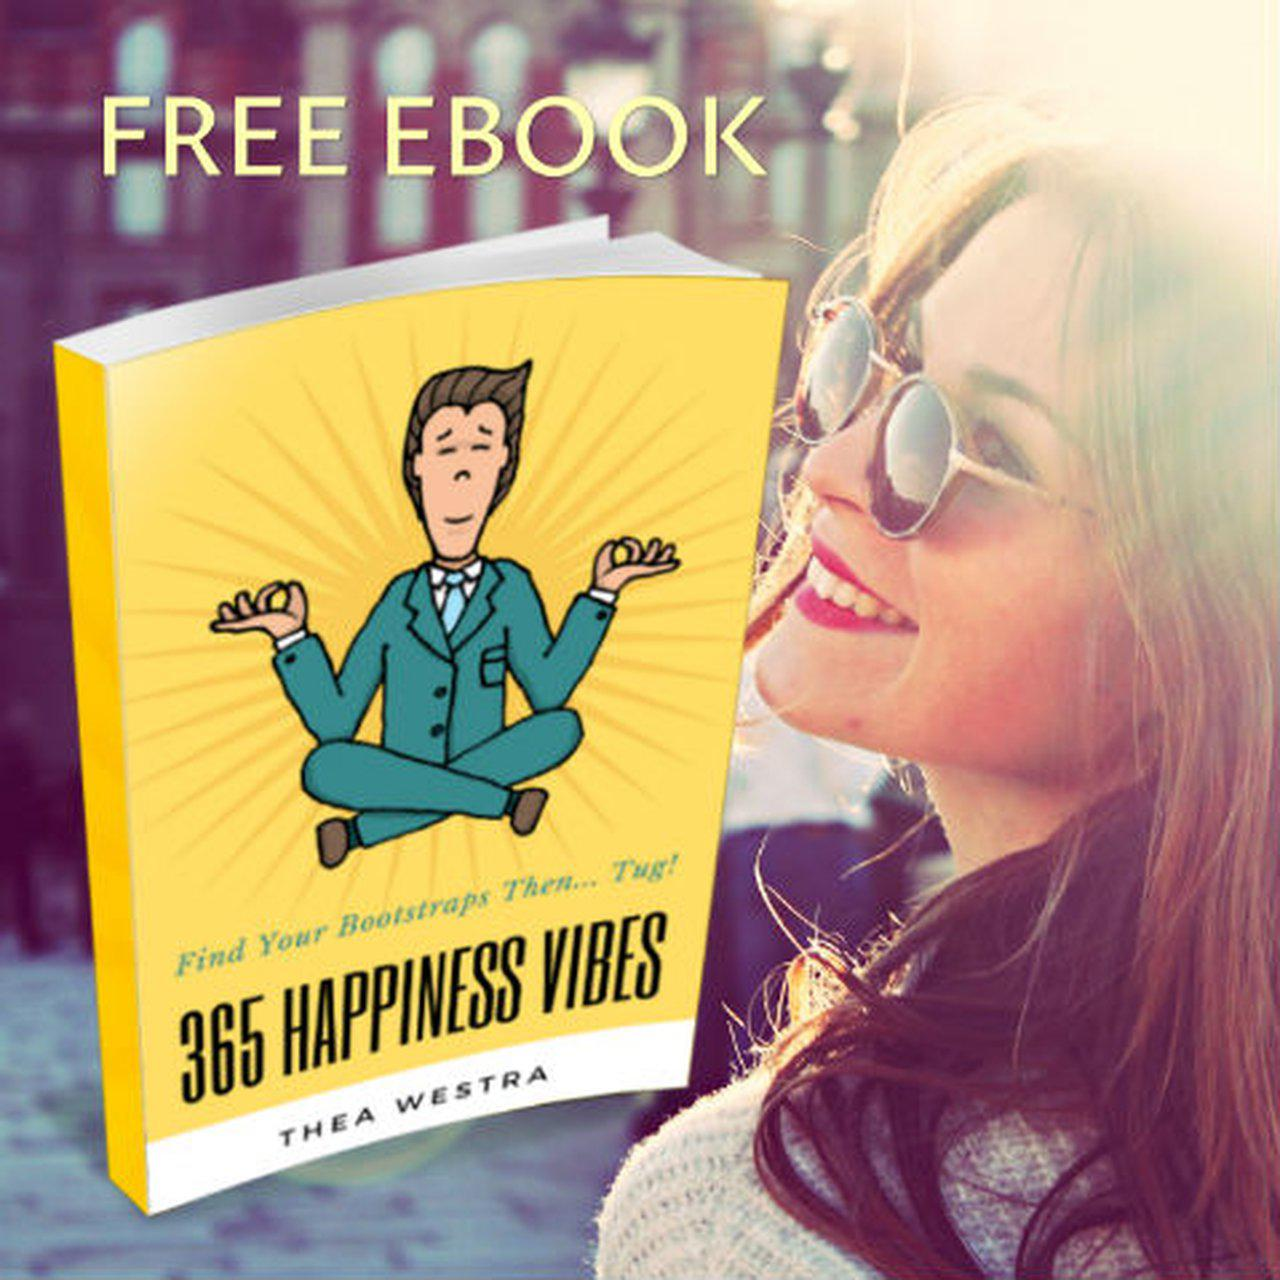 Free 365 Happiness Vibes eBook